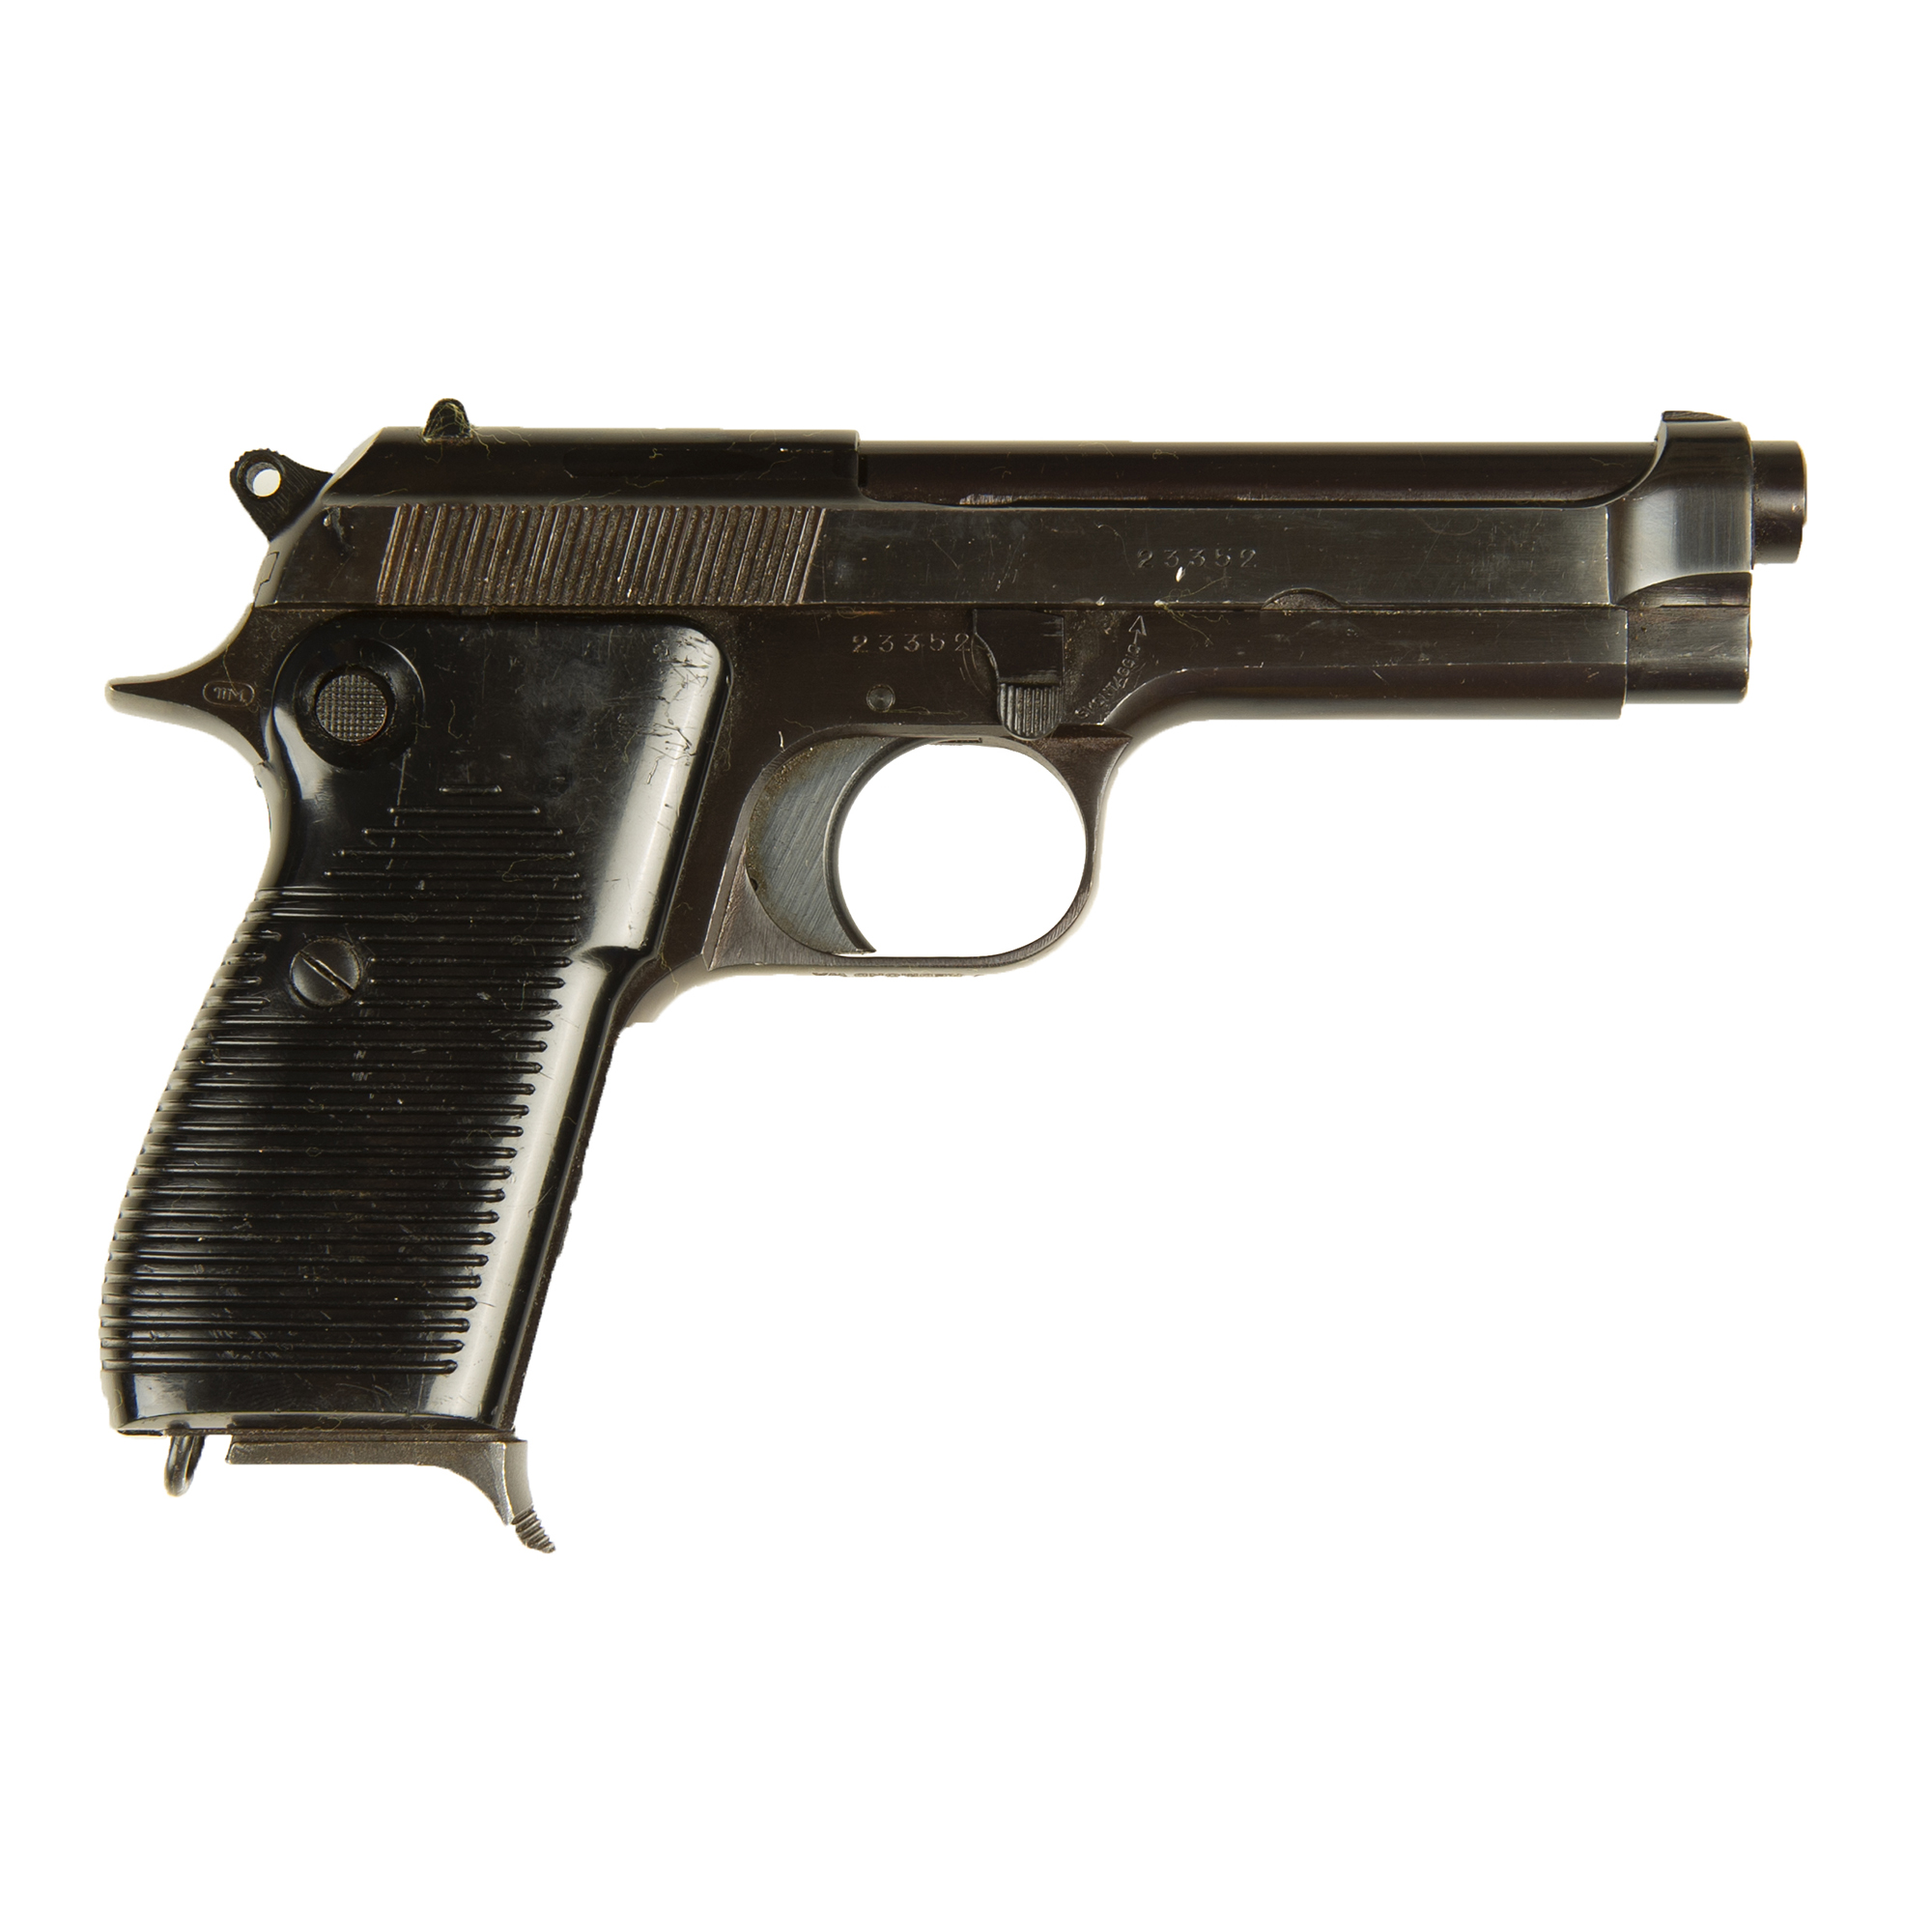 Used Beretta Model M1951 Handgun, 9 x 19mm